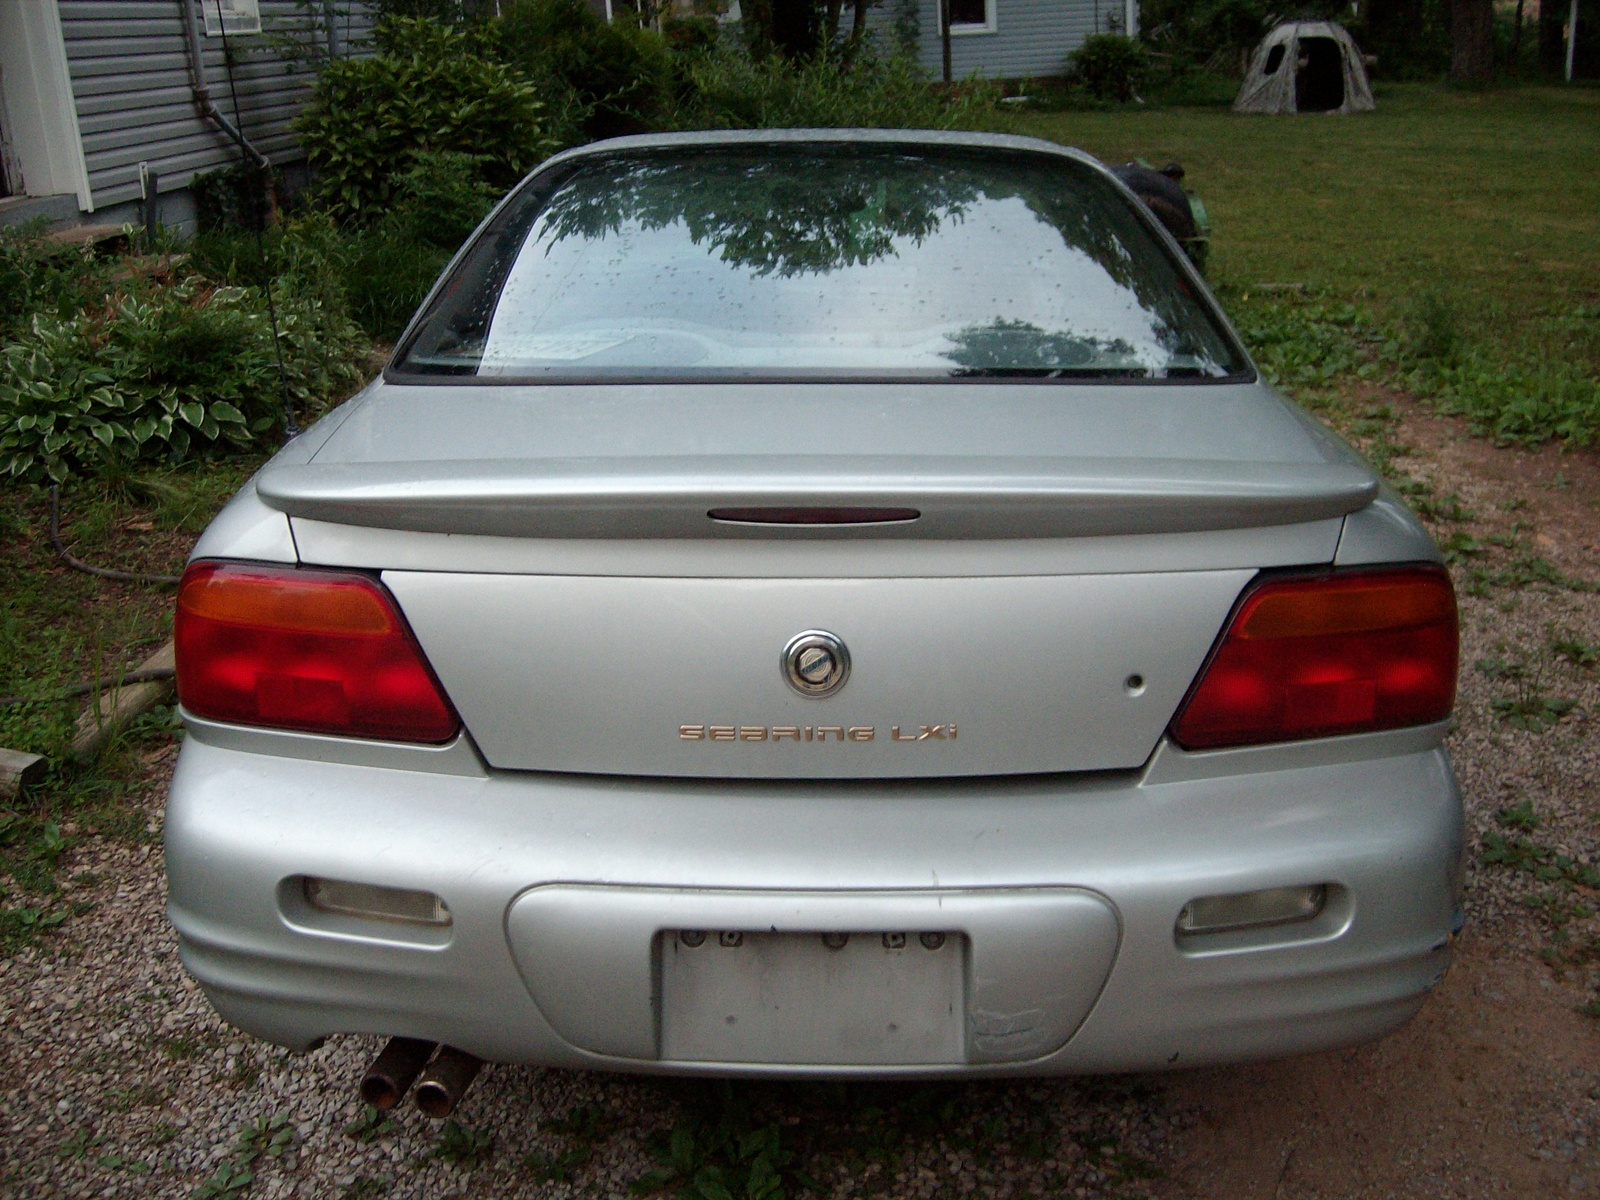 1999 chrysler sebring exterior pictures cargurus. Cars Review. Best American Auto & Cars Review